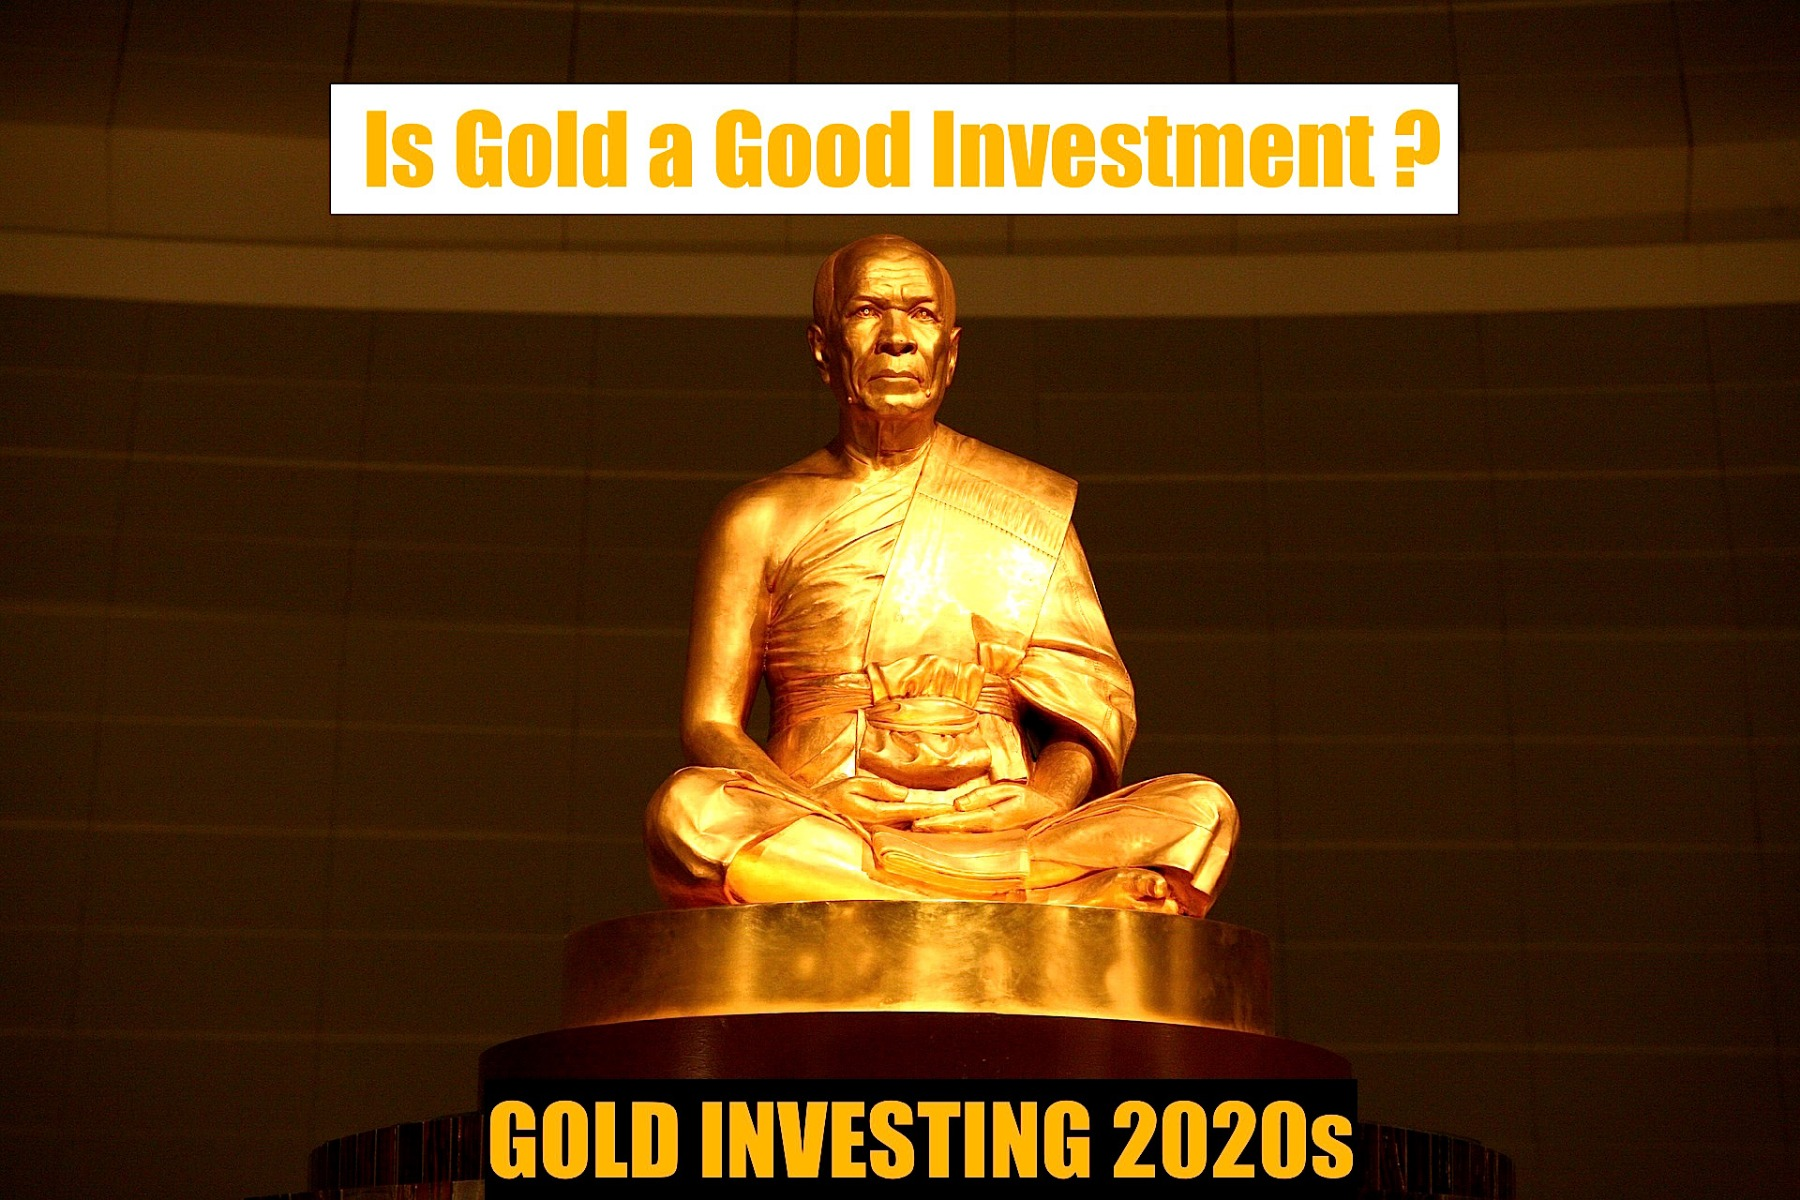 Gold Investing 2020s